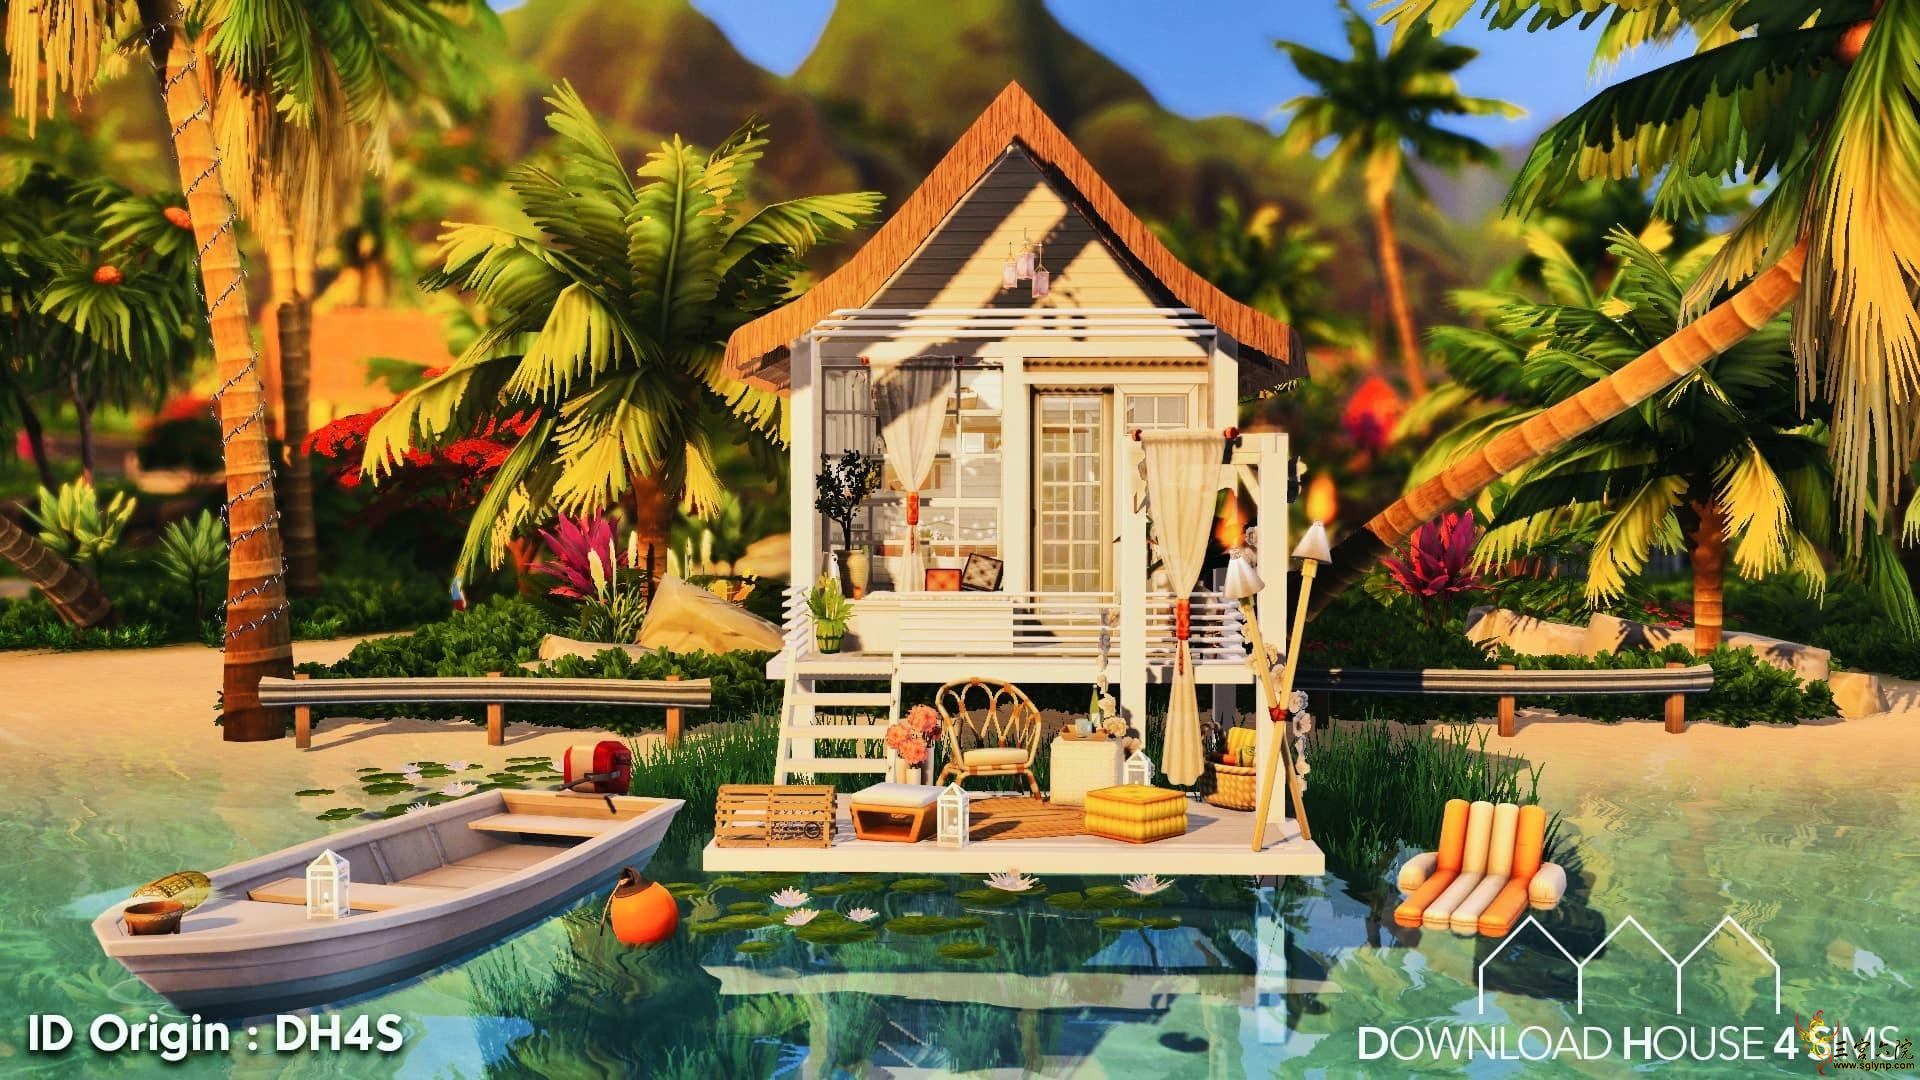 2a862777a3f2e9e7dcdf93e676dac48b_Download-House-4-sims-Tiny-beach-cabin-house-1.jpg